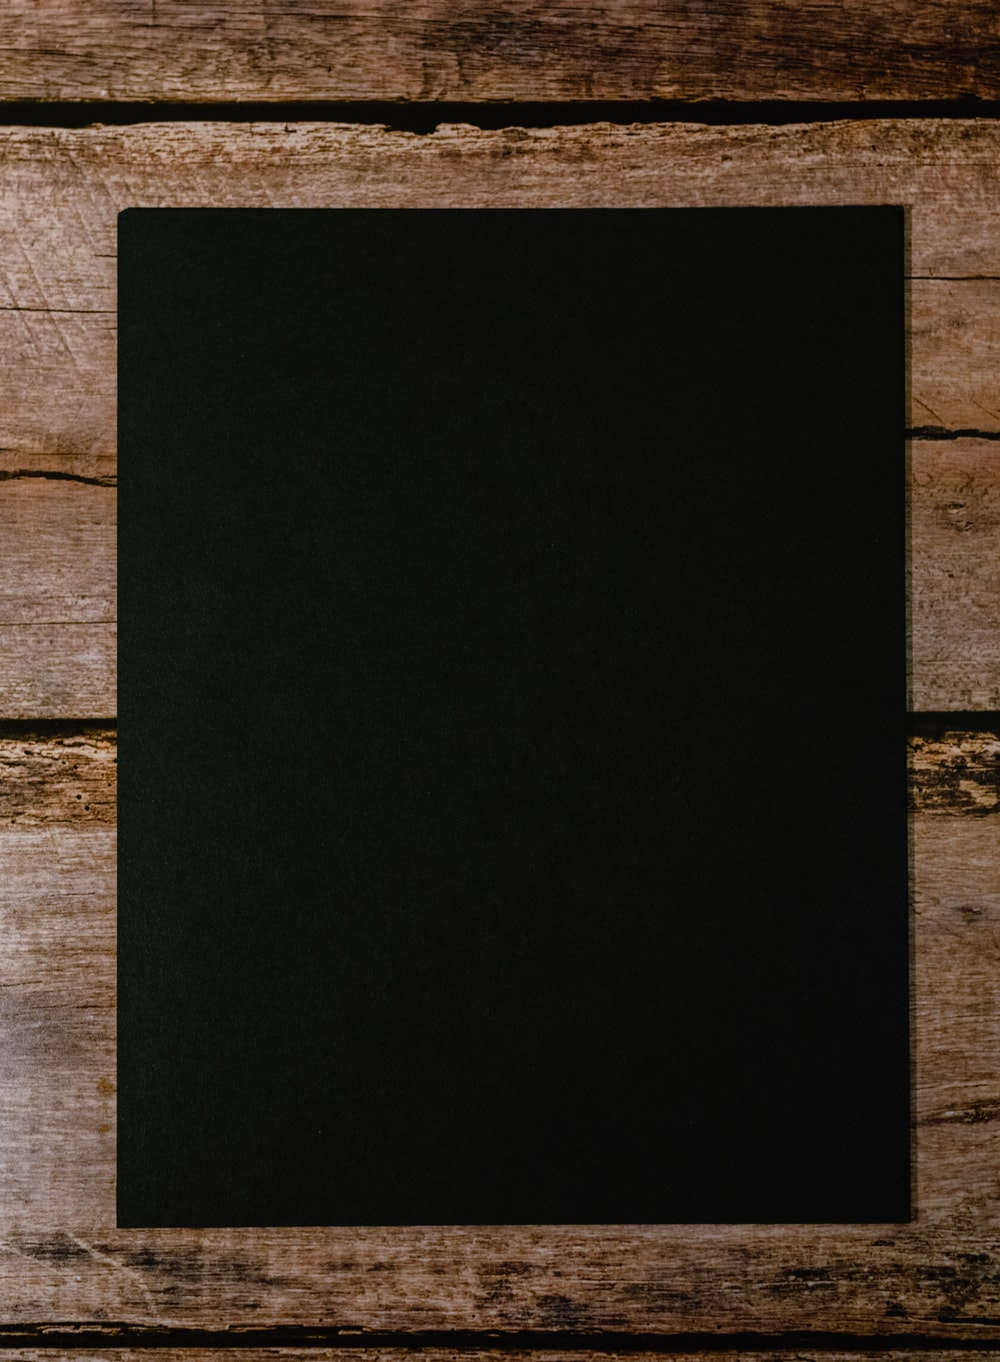 black paper on brown wooden table